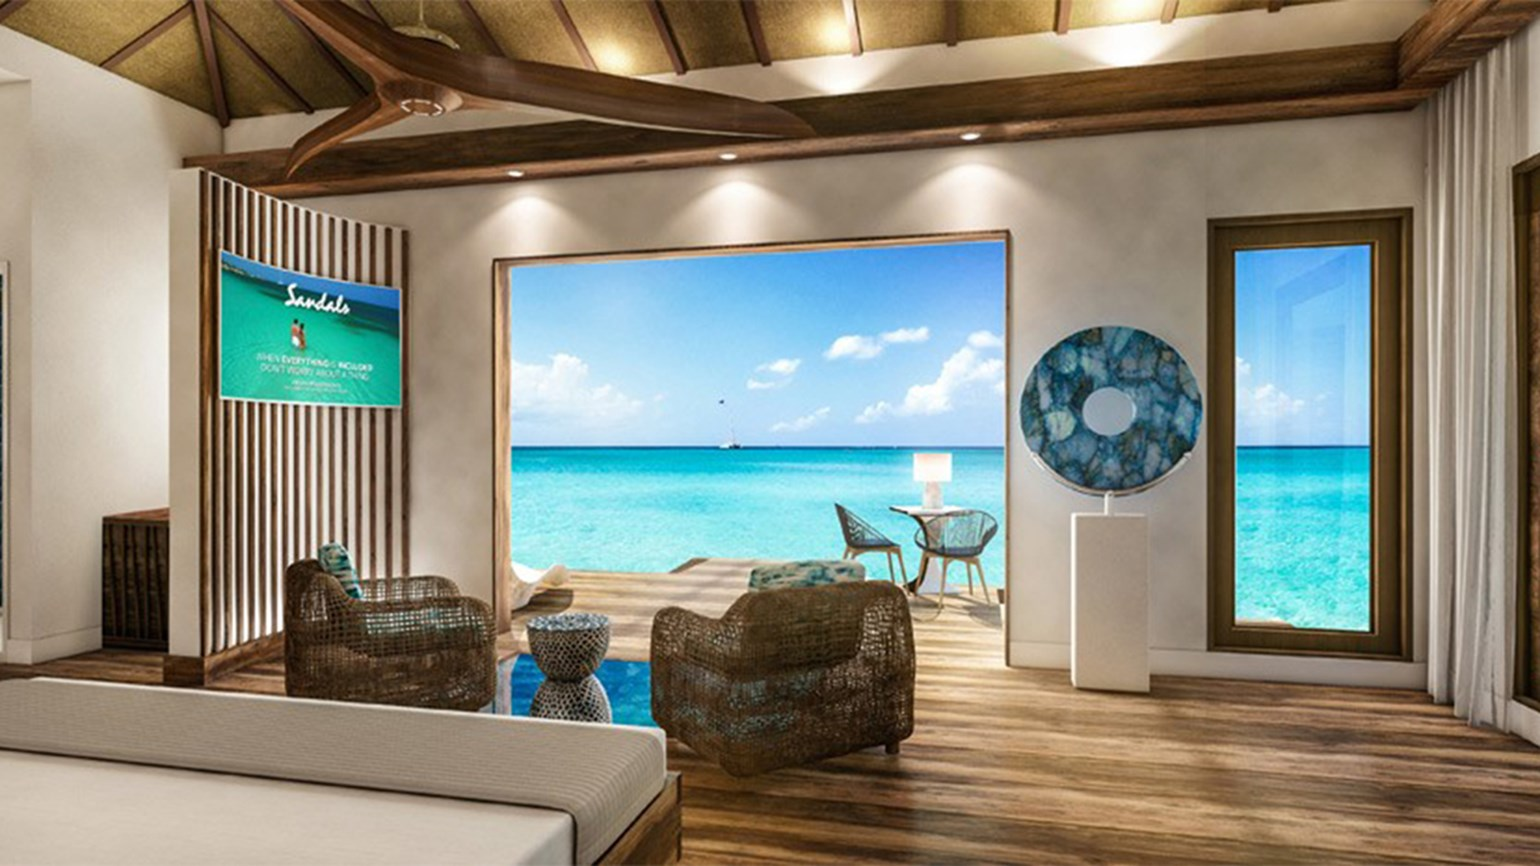 Sandals adding overwater bungalows at St. Lucia resort